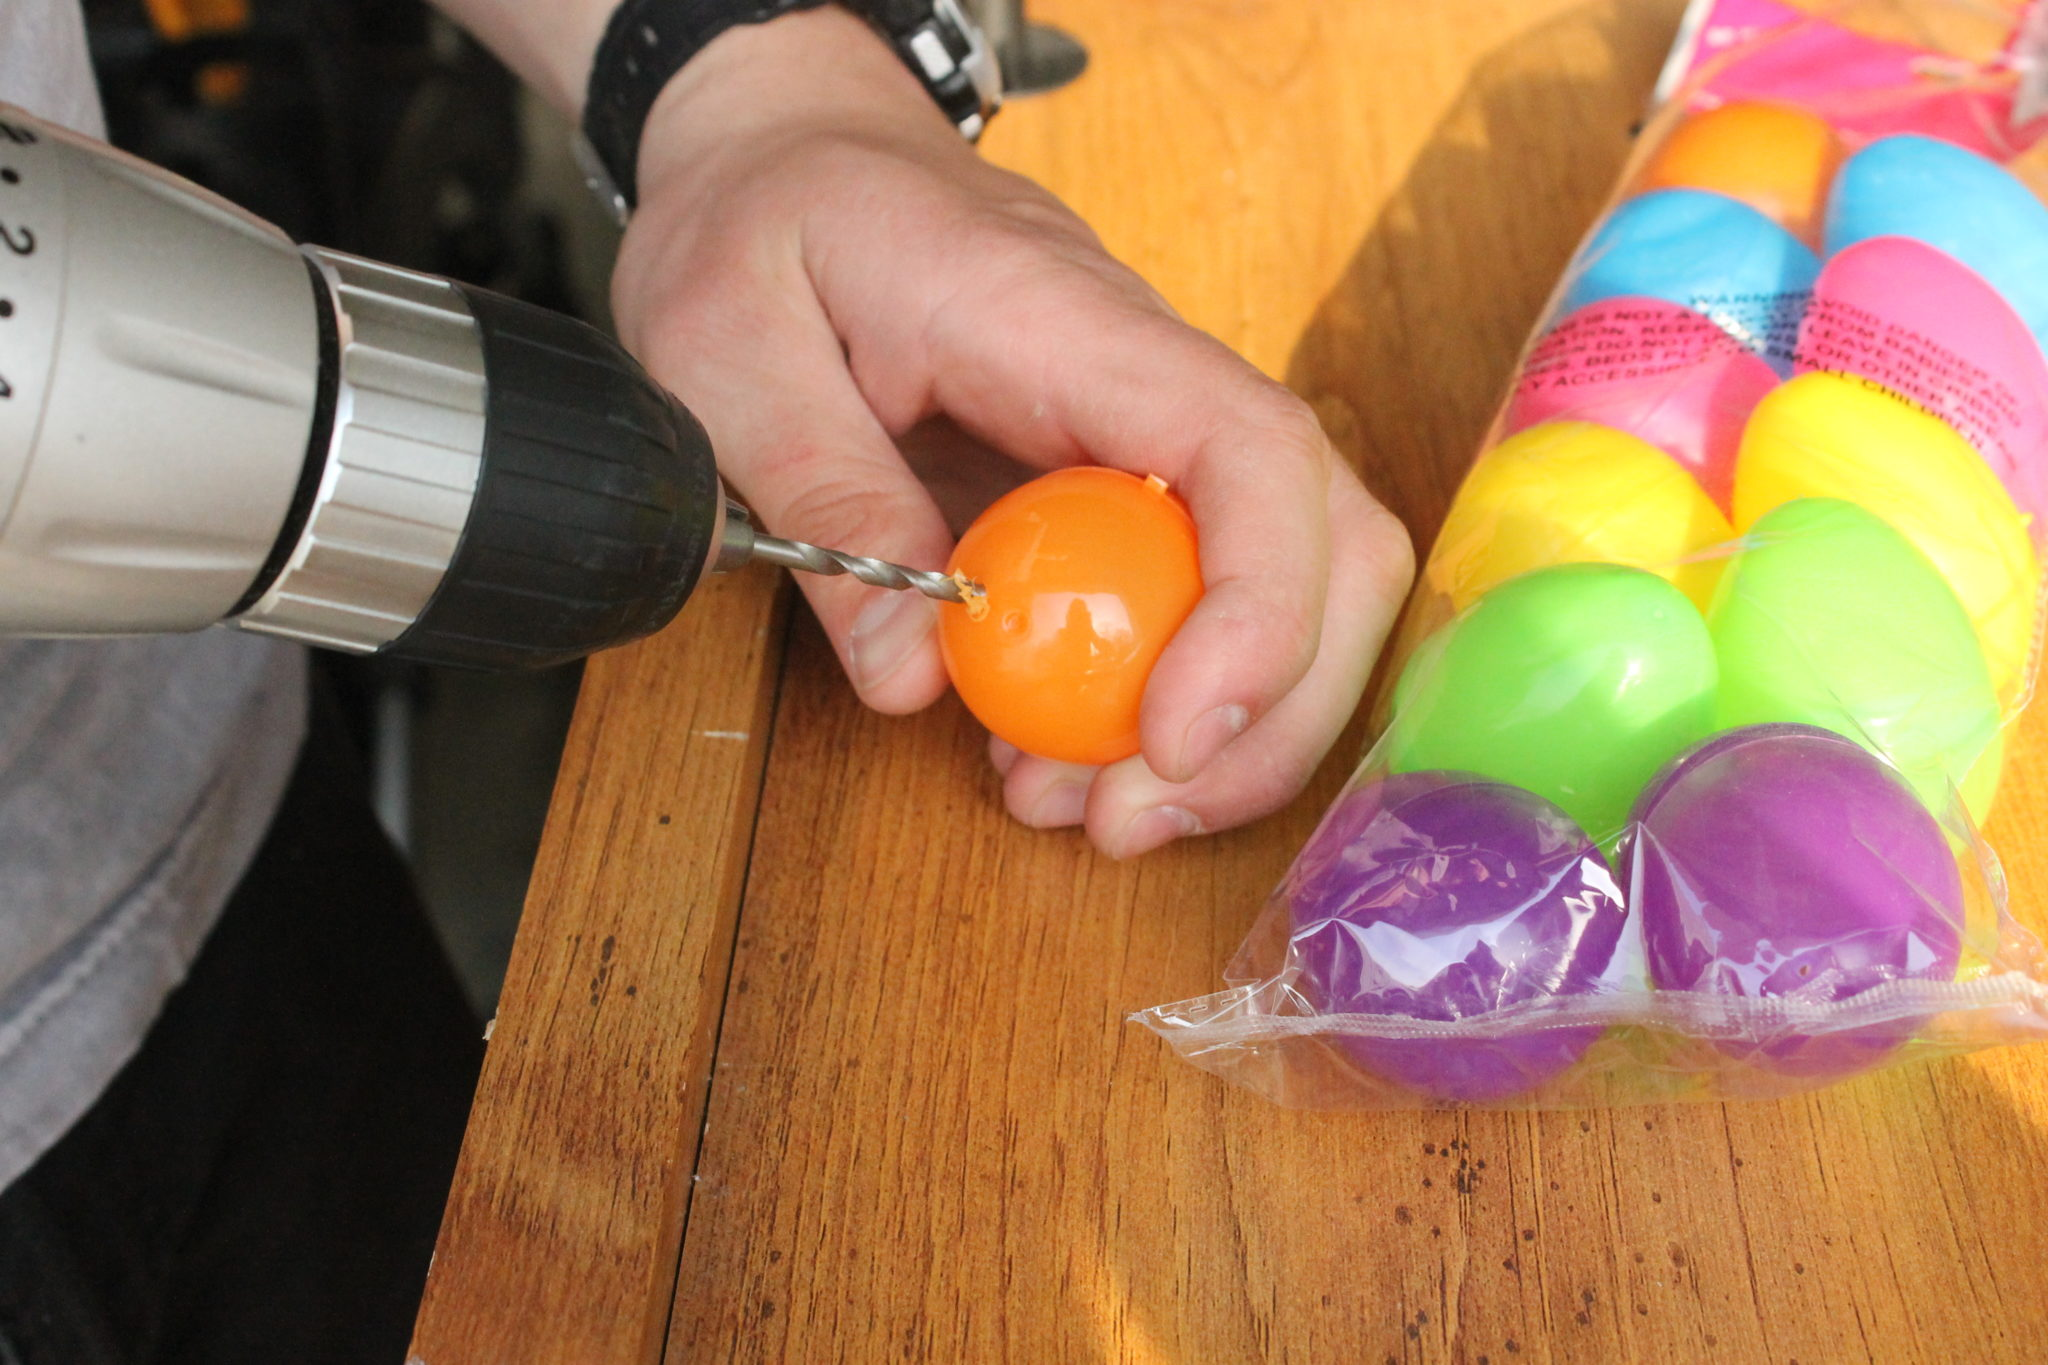 frozen yogurt easter egg pops drilling